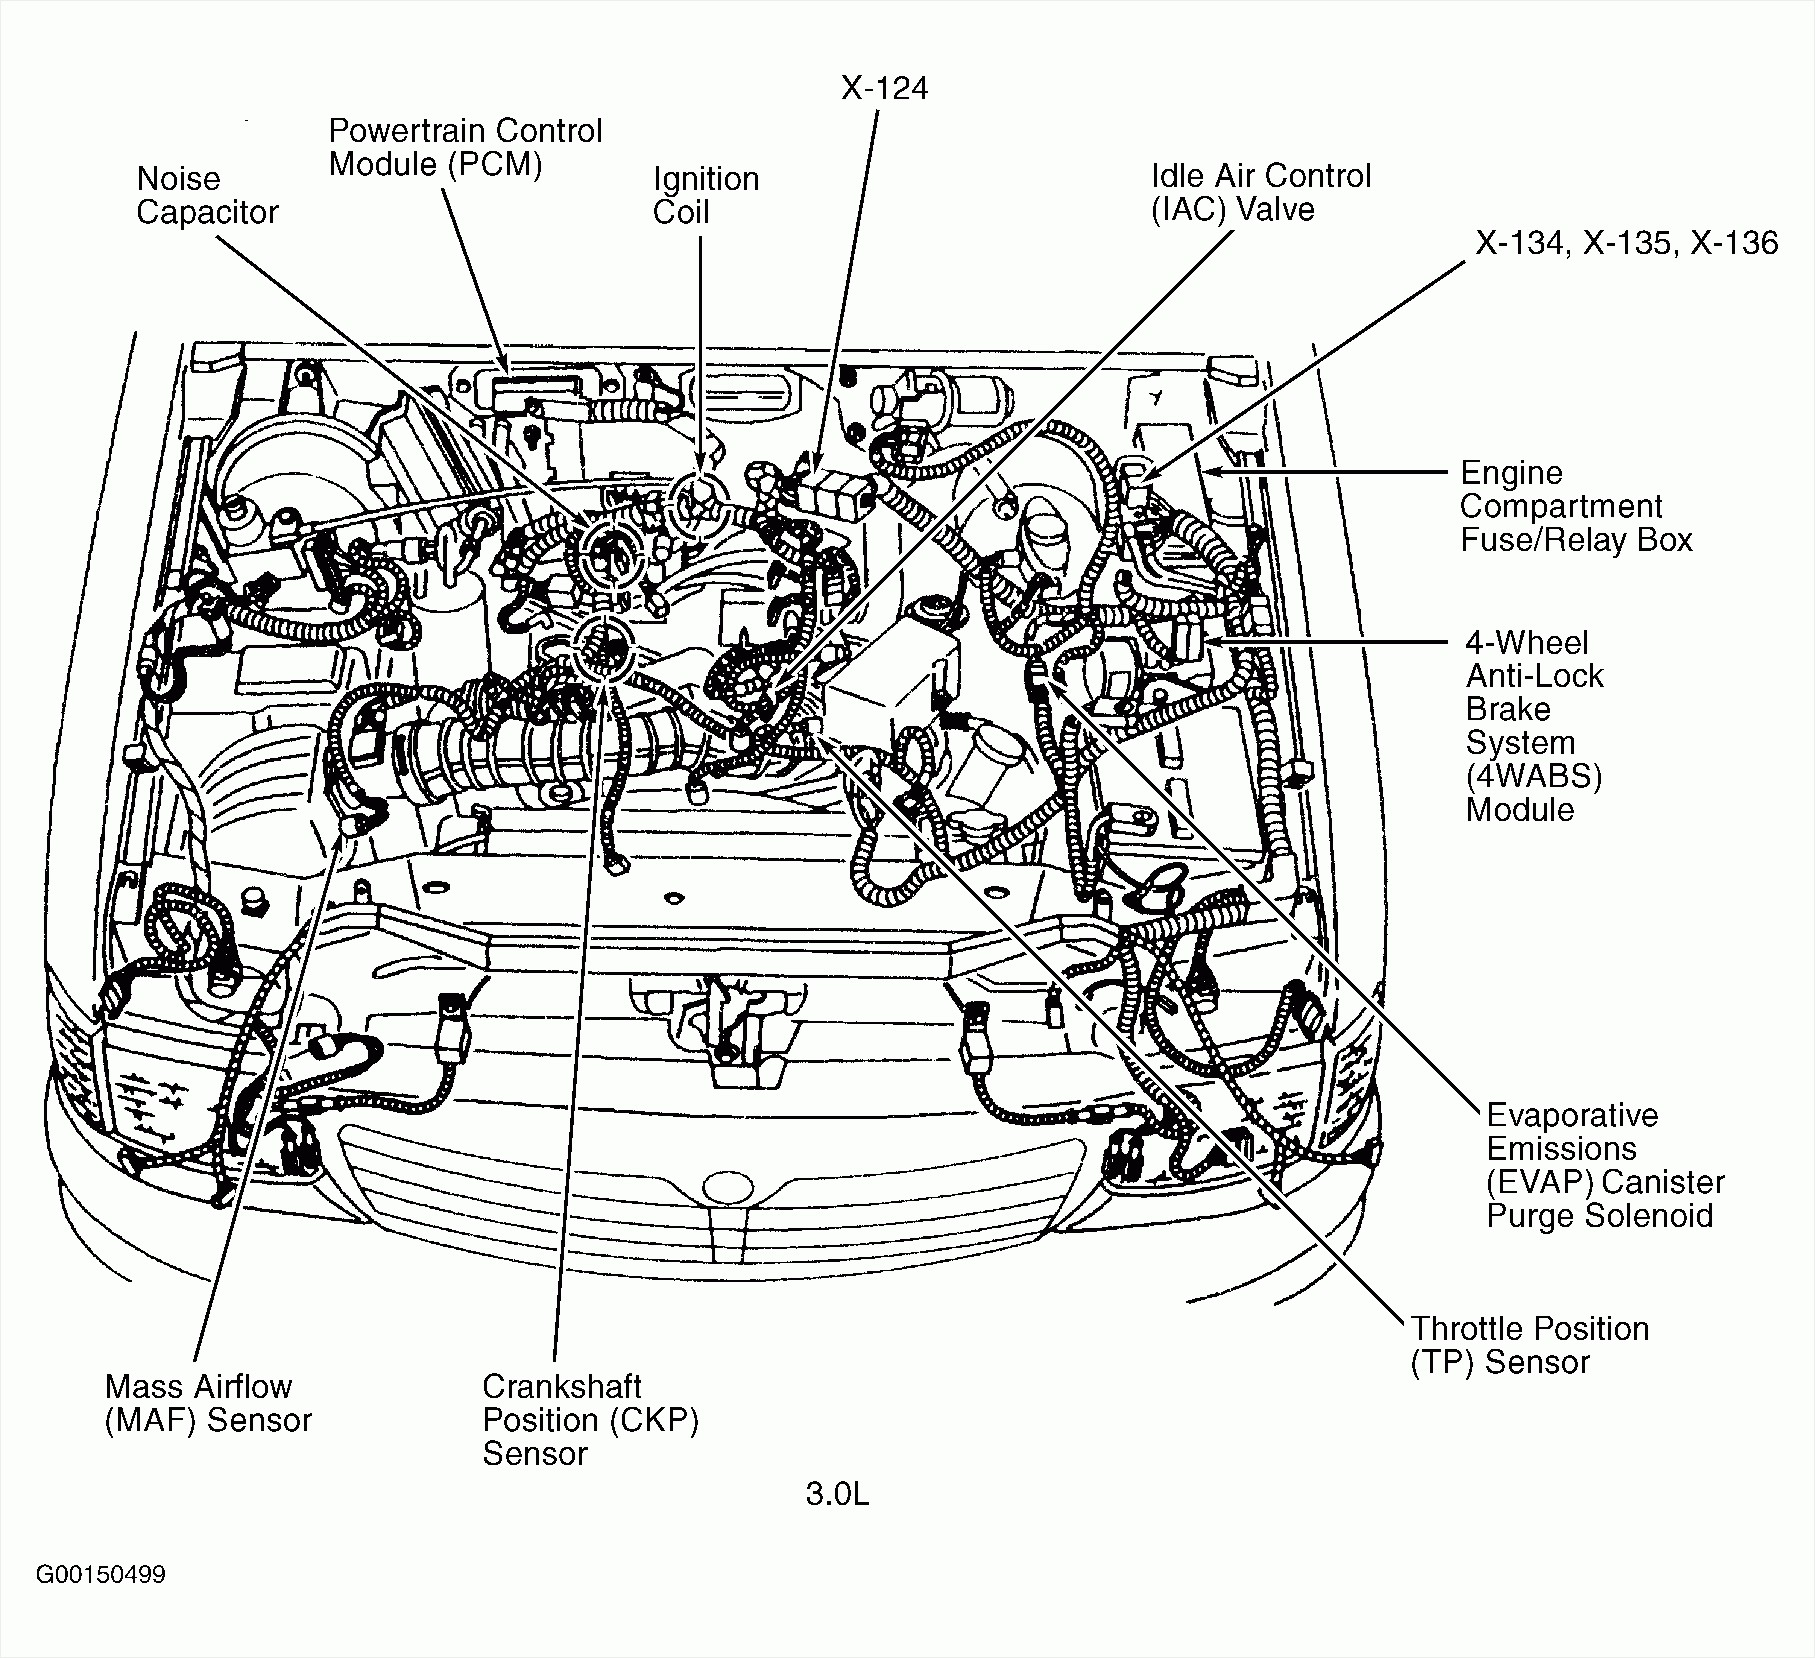 2000 ford taurus engine diagram wiring diagram table Mitsubishi 3.5 V6 Engine Diagram